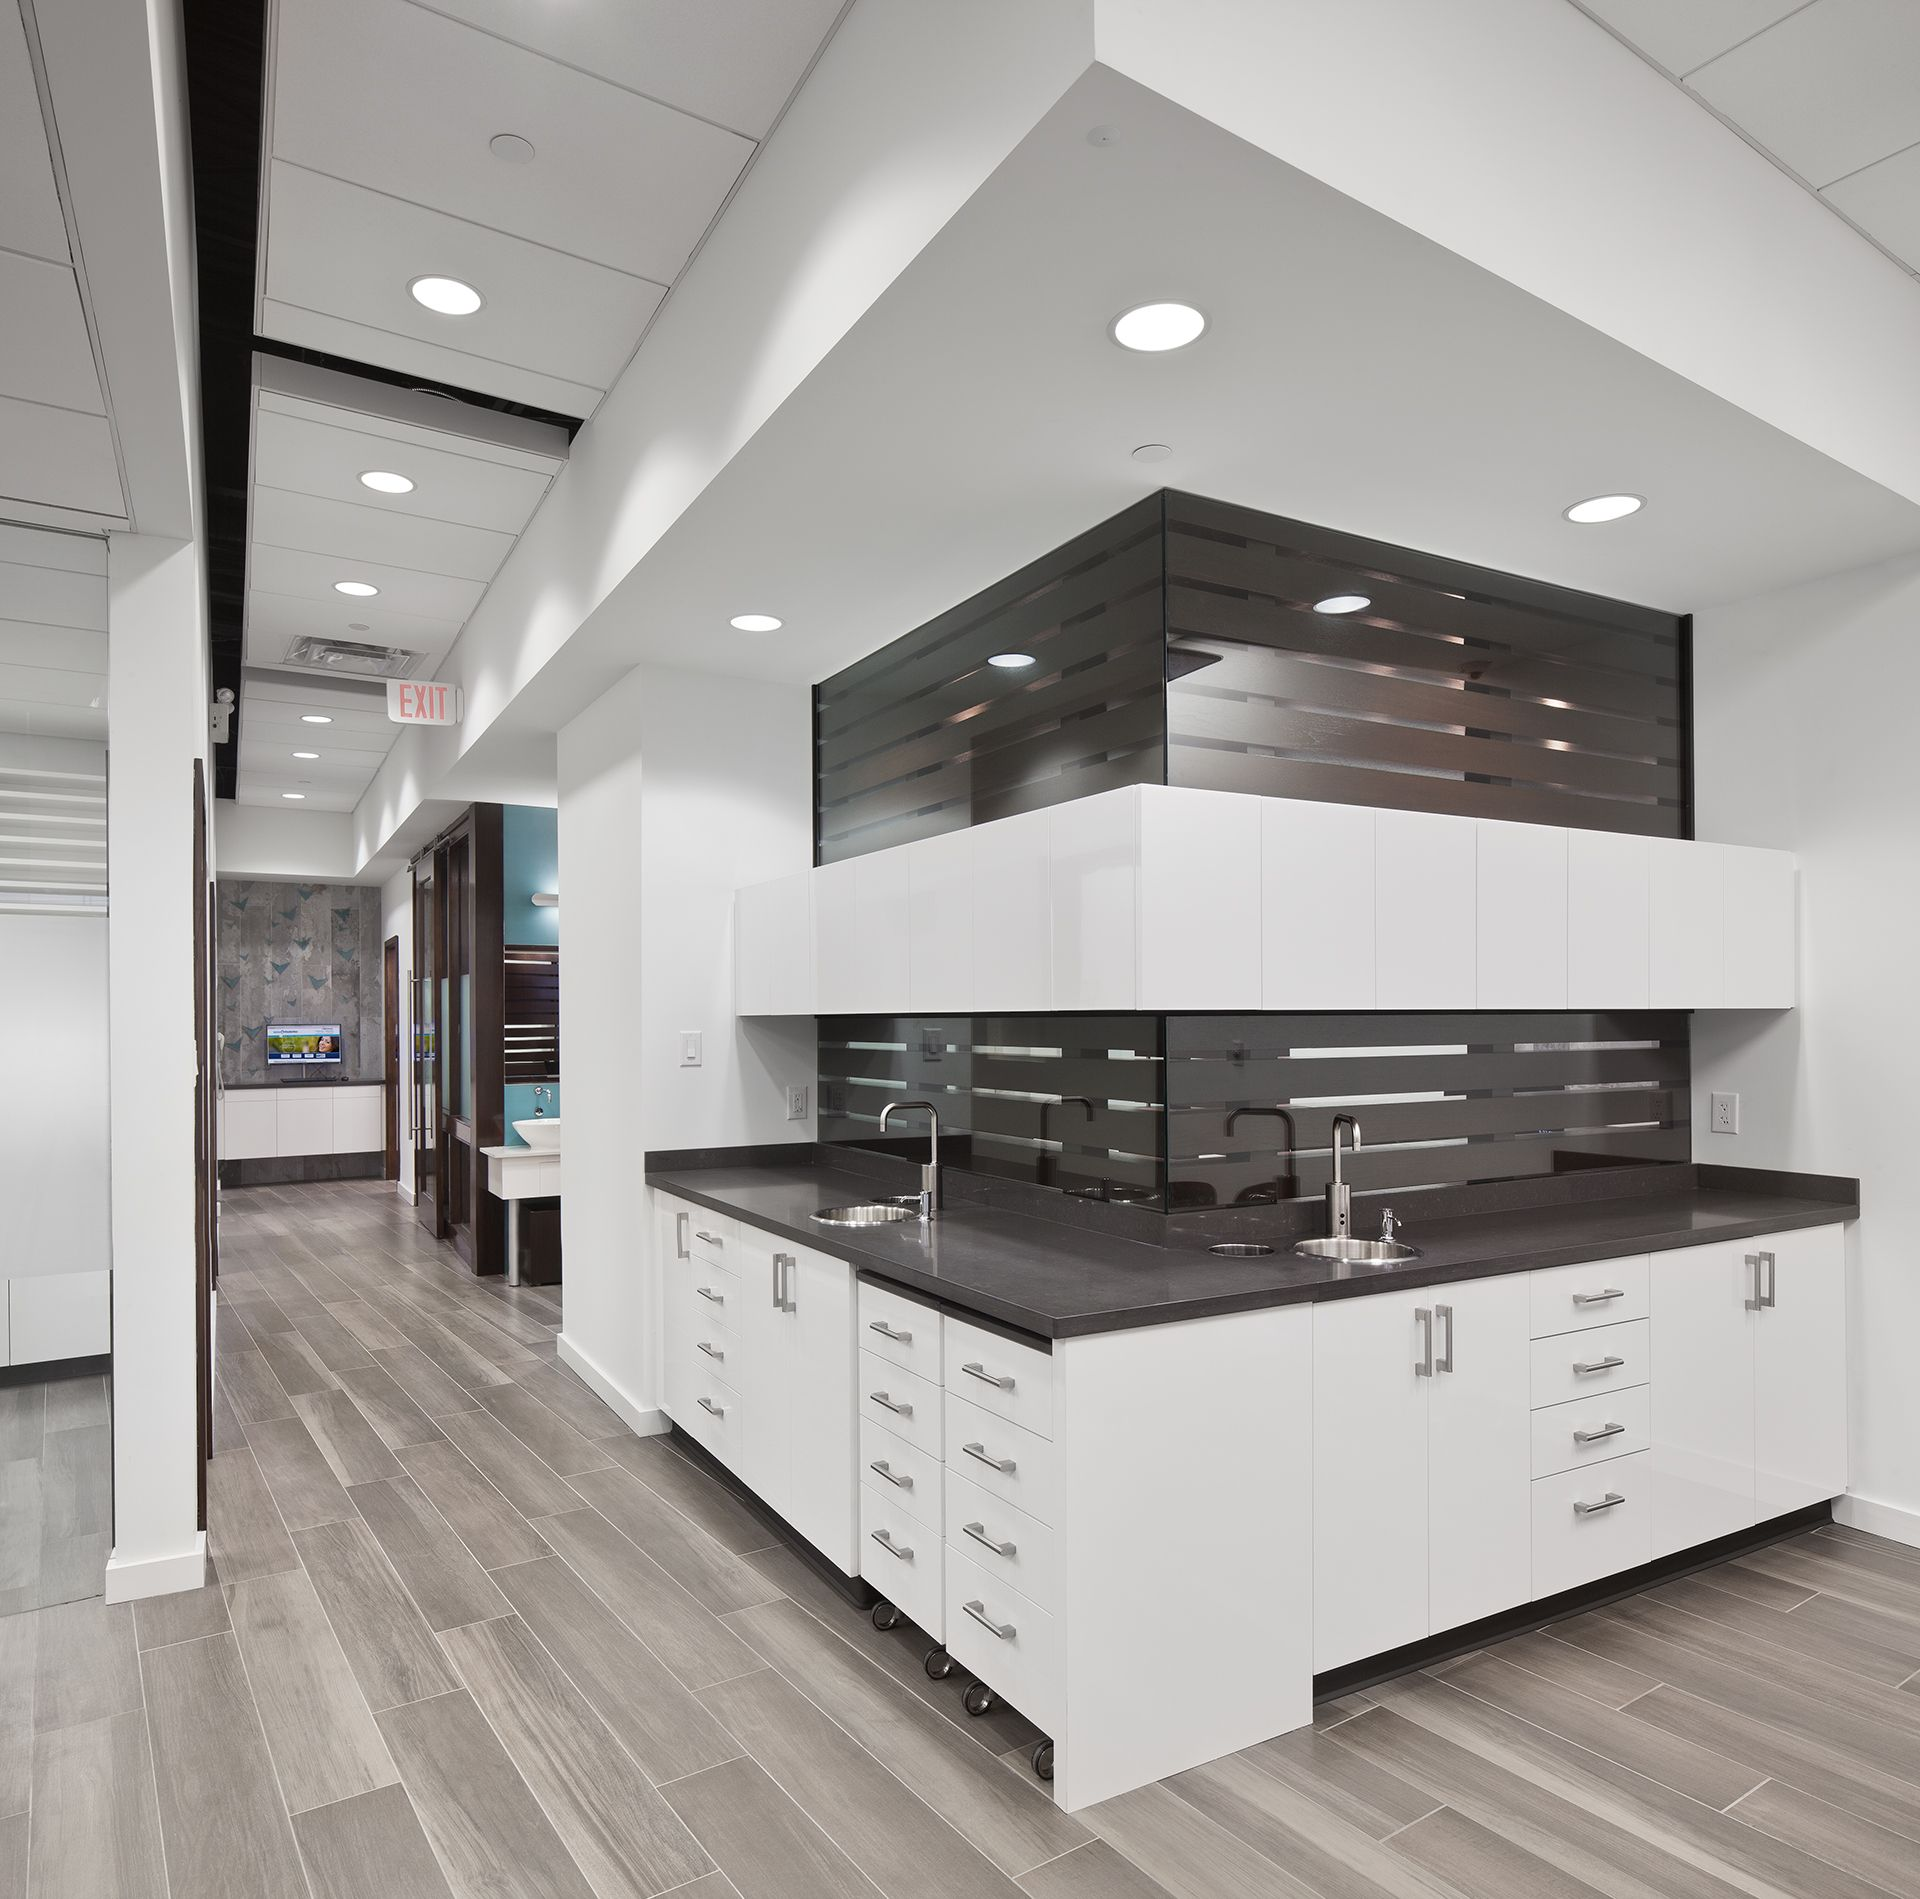 Tasios Orthodontics - Open Bay Cabinetry